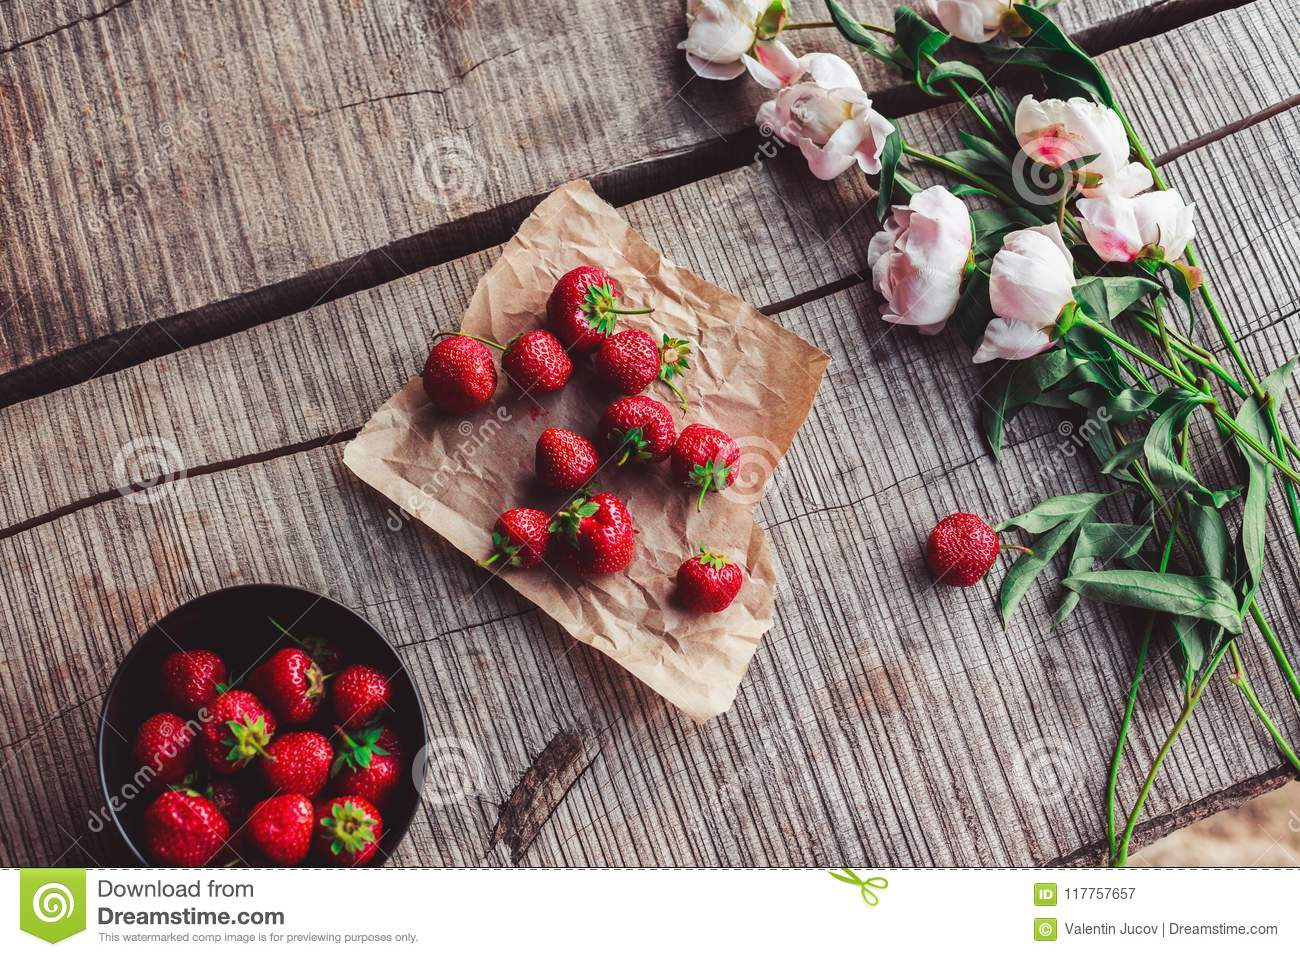 Download Breakfast With Strawberries And Flowers On The Rustic Table.  Healthy Breakfast, Clean Eating